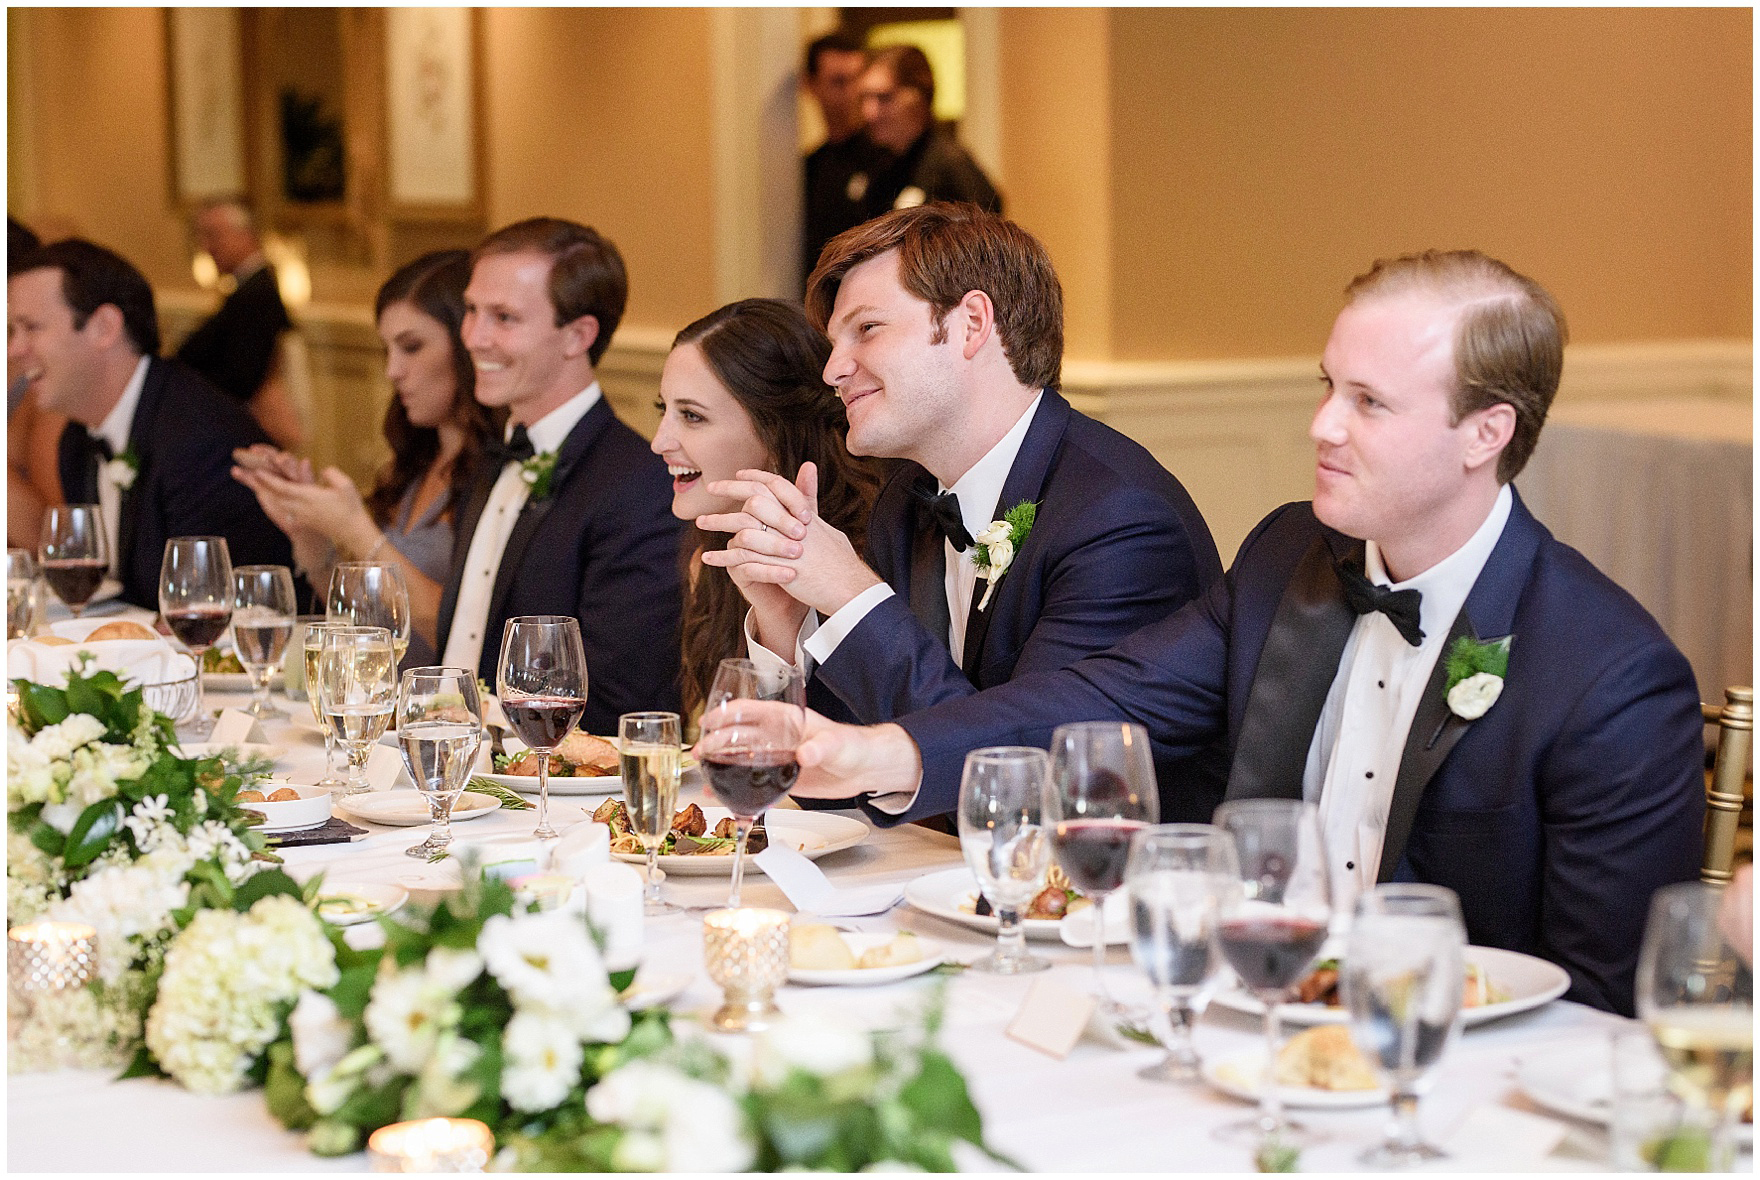 The bride and groom laugh during toasts at their Butterfield Country Club wedding.